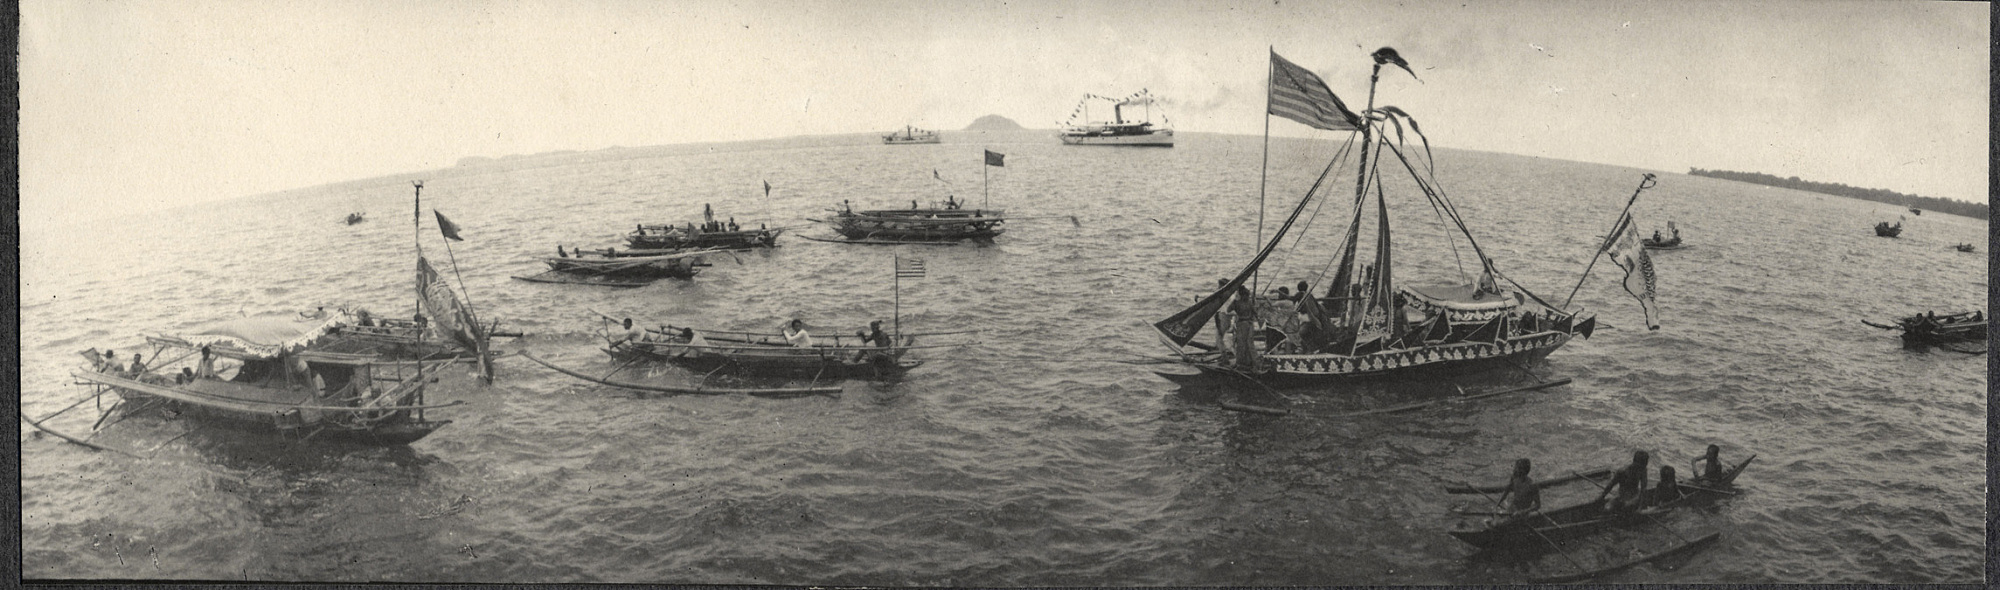 Zamboanga: decorated bancas, from the deck of the USS Logan